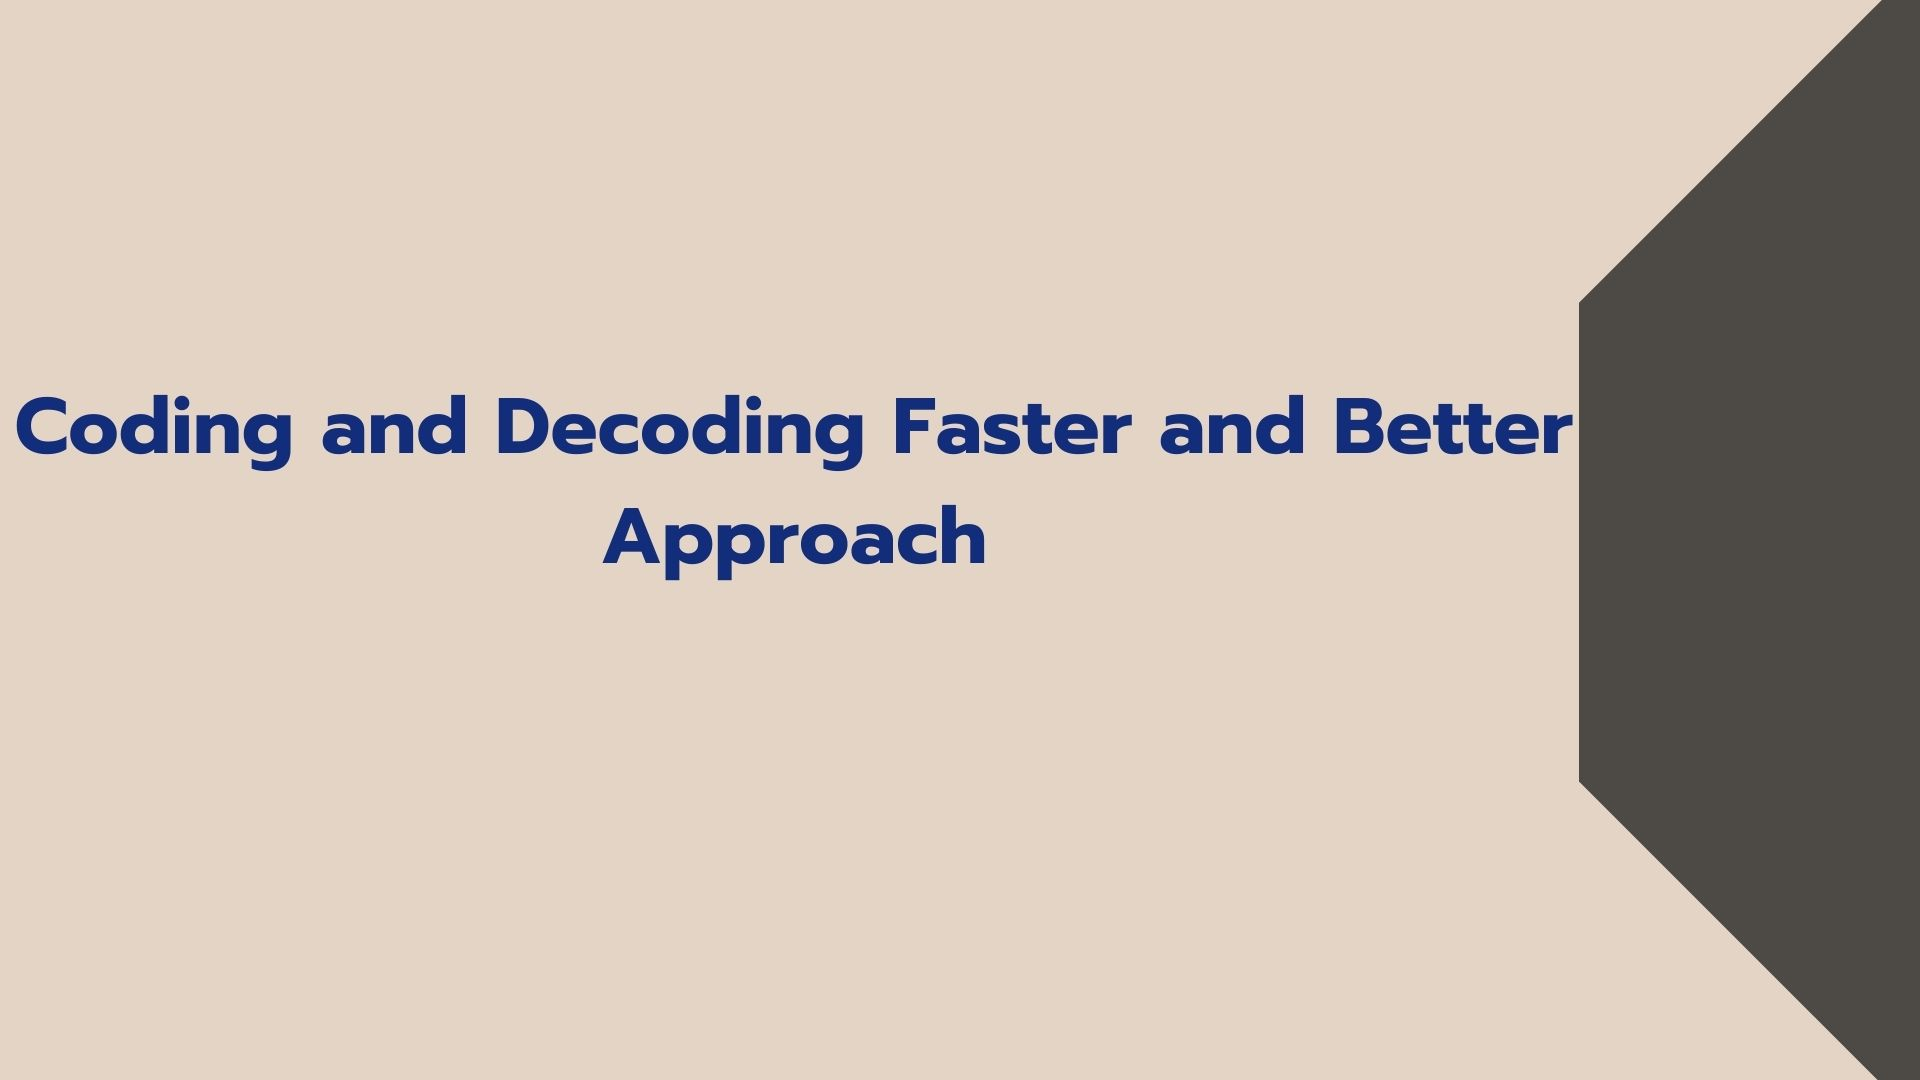 Coding and Decoding Faster and Better Approach (1)